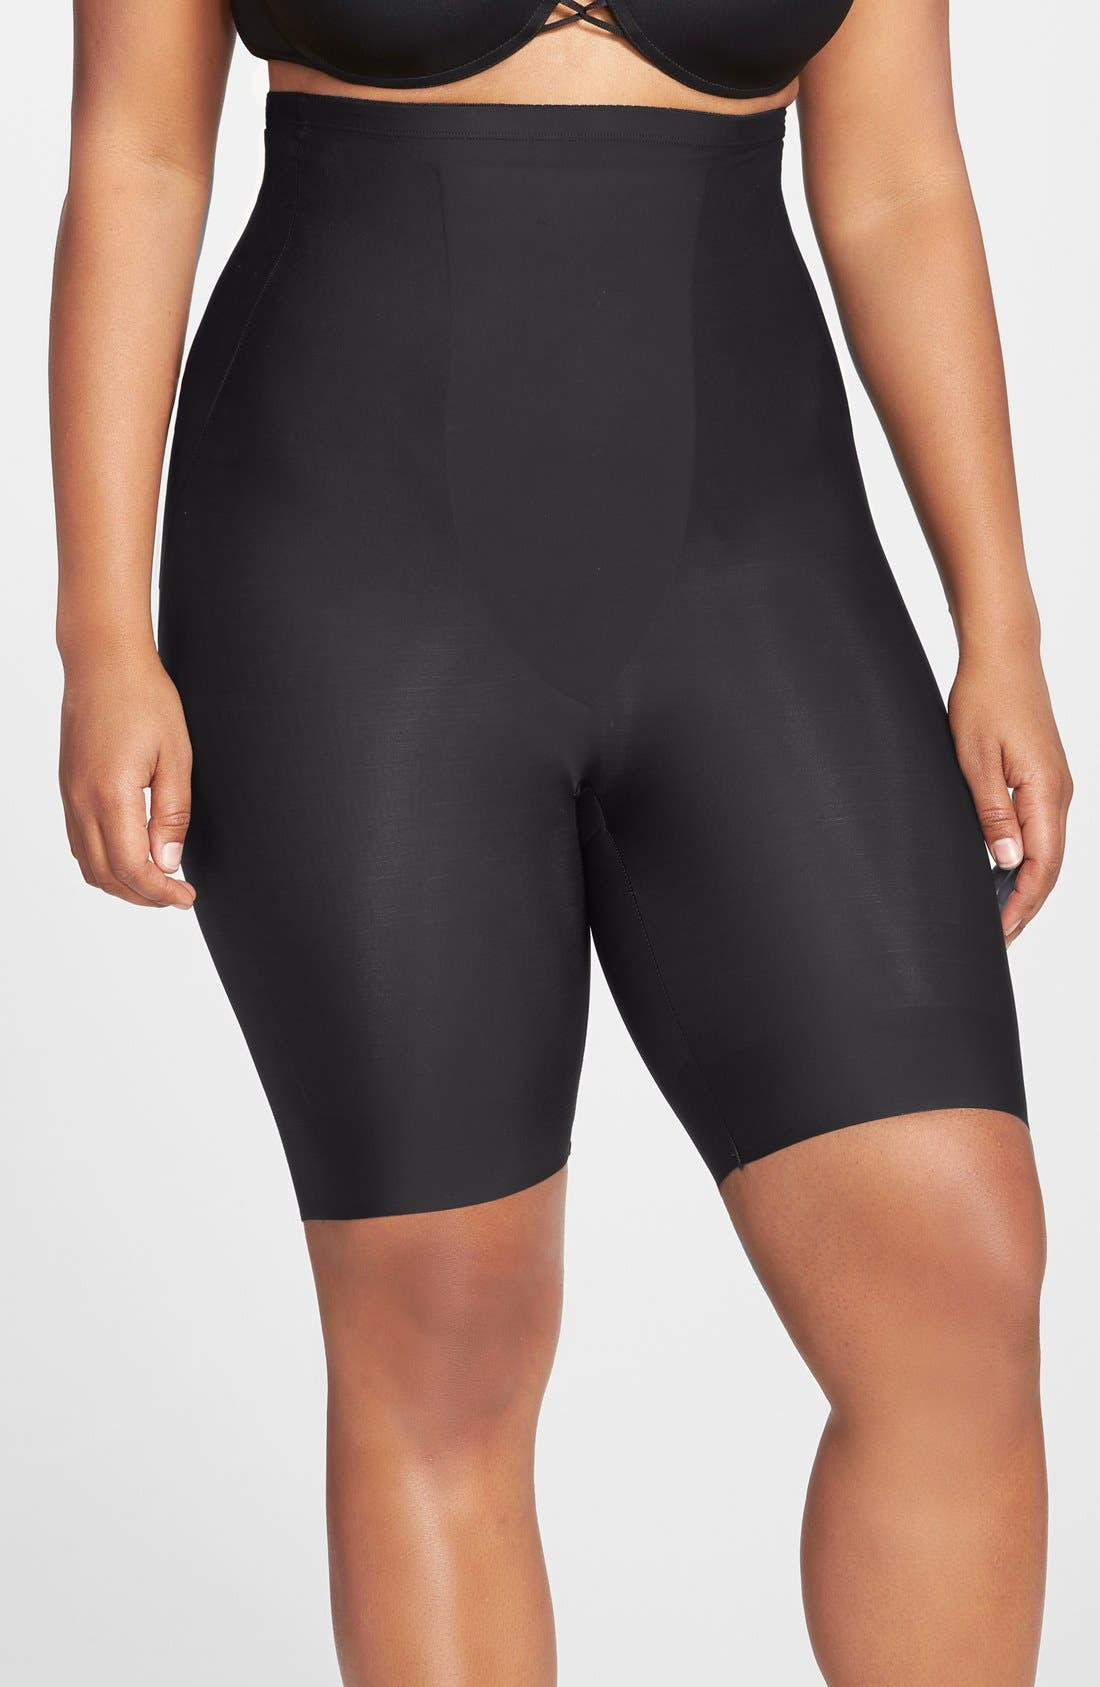 Alternate Image 1 Selected - TC Shaping High Waist Thigh Slimmer (Plus Size) (Online Only)